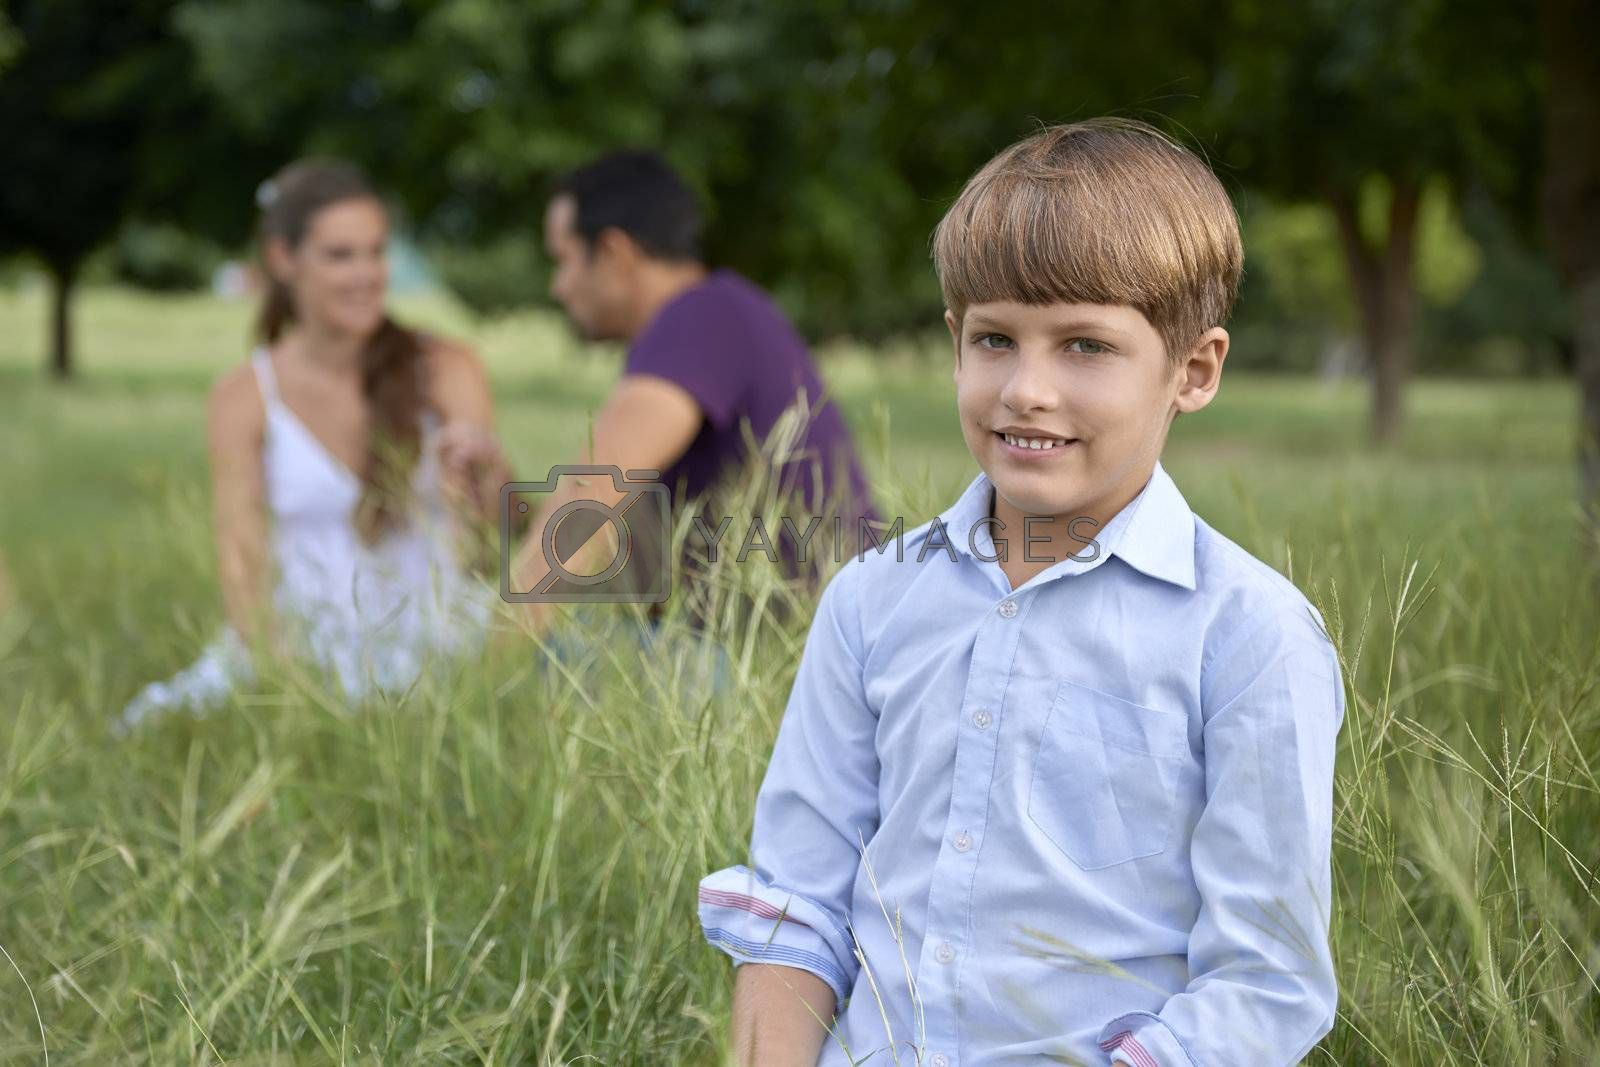 People and recreation, happy boy with mother and father in background. Front view